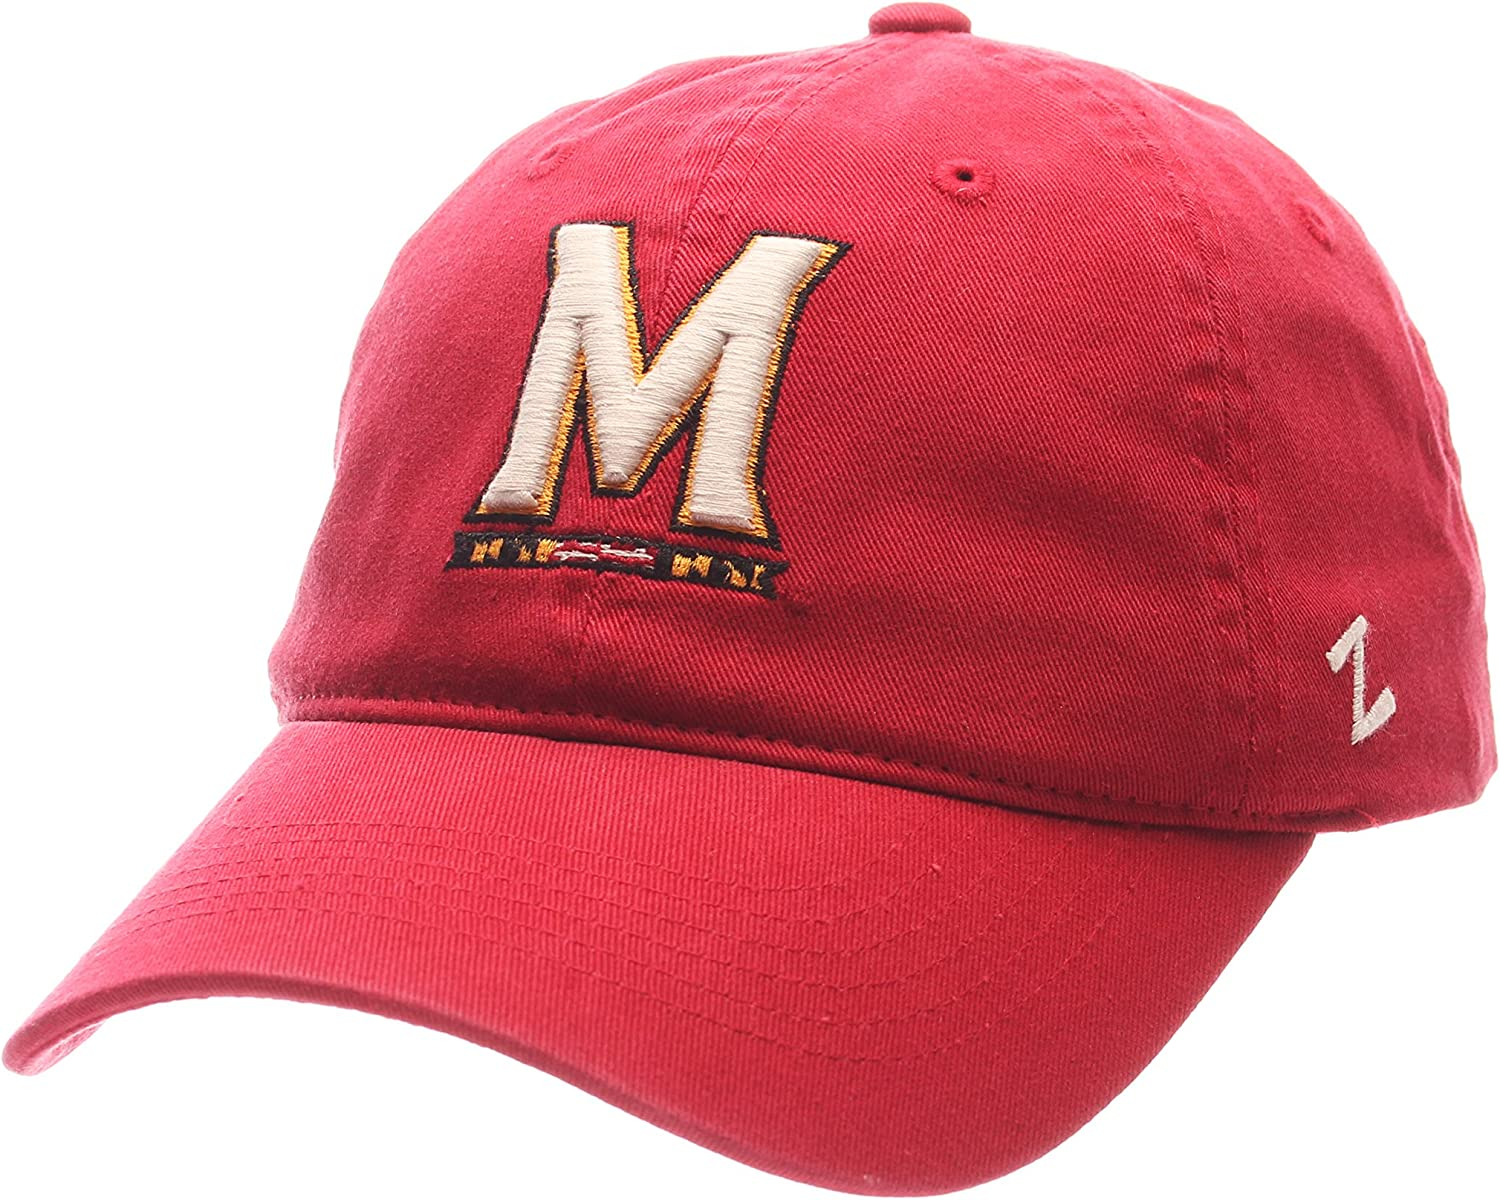 Adjustable NCAA Zephyr Maryland Terrapins Mens University Relaxed Hat Team Color//Stone